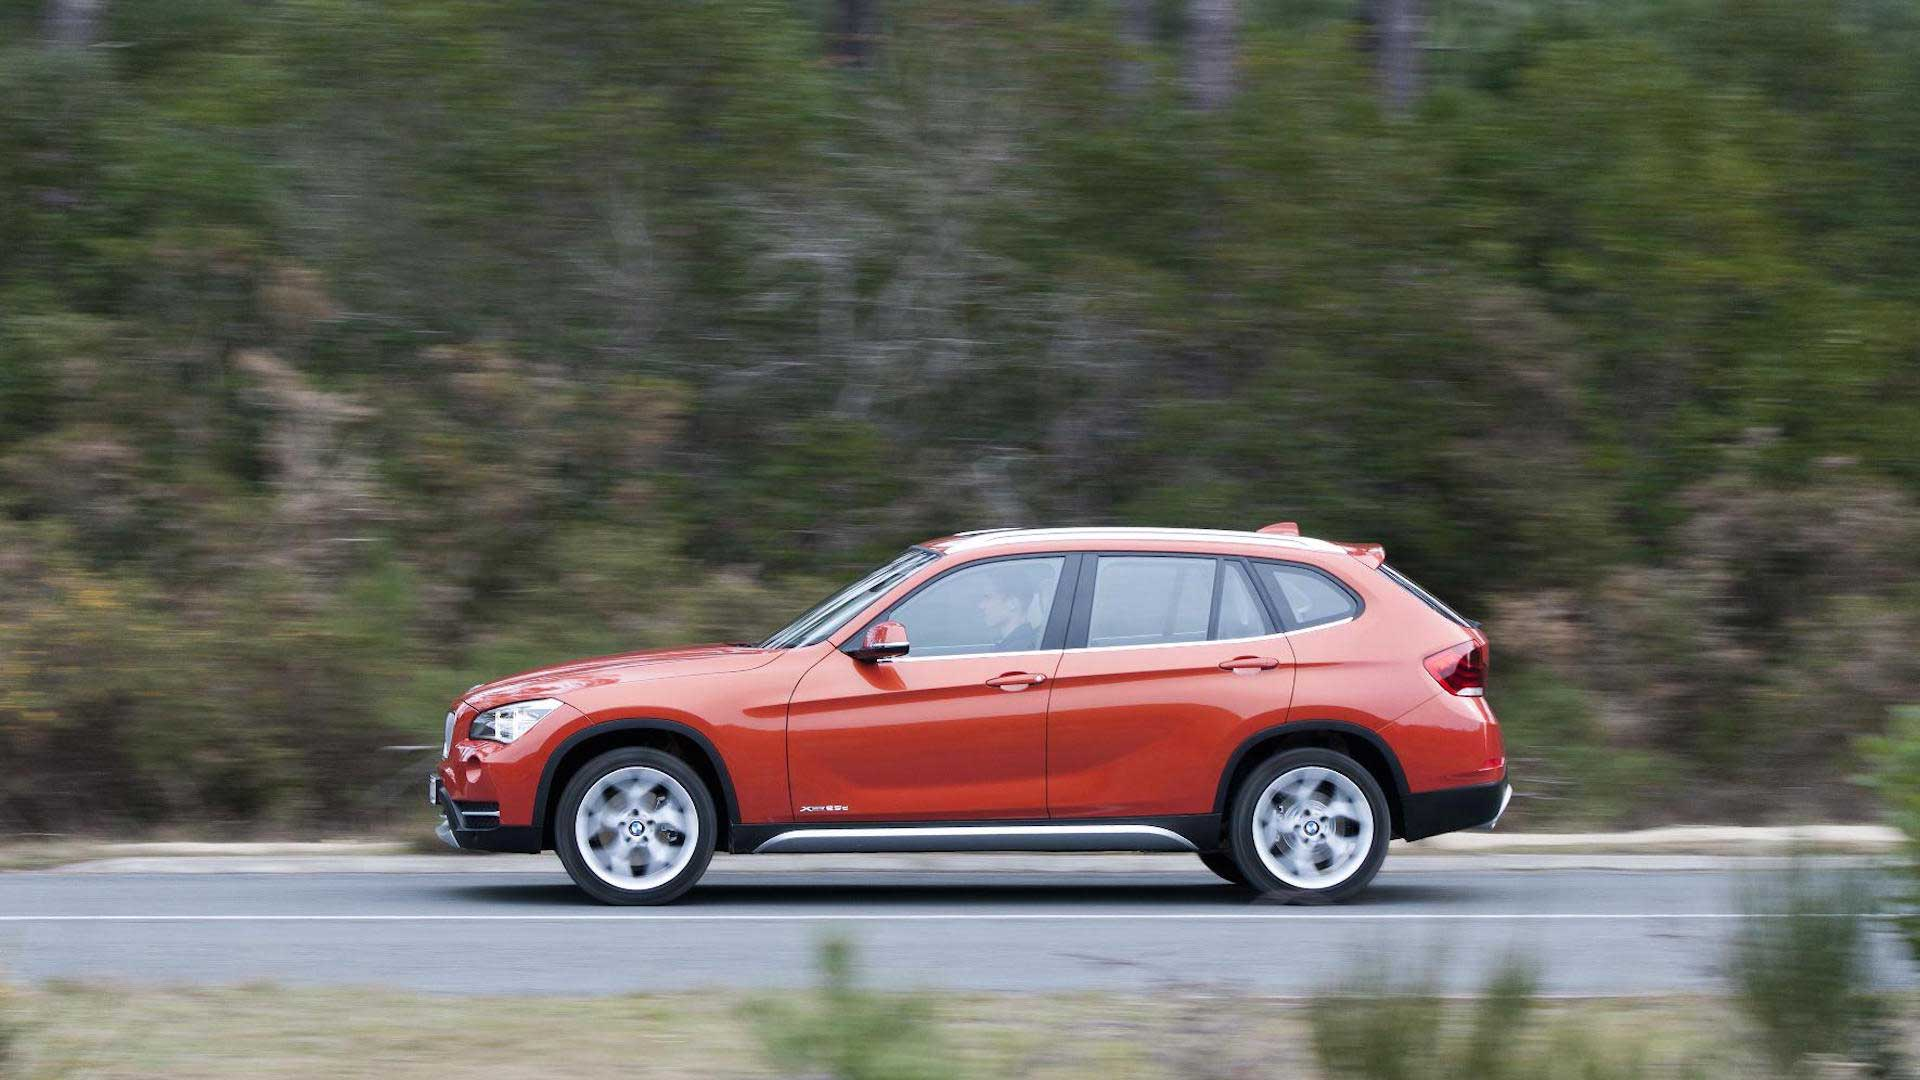 zipcar luxury cars  The 12 Best Zipcar Models in the Nation, Ranked - The Drive